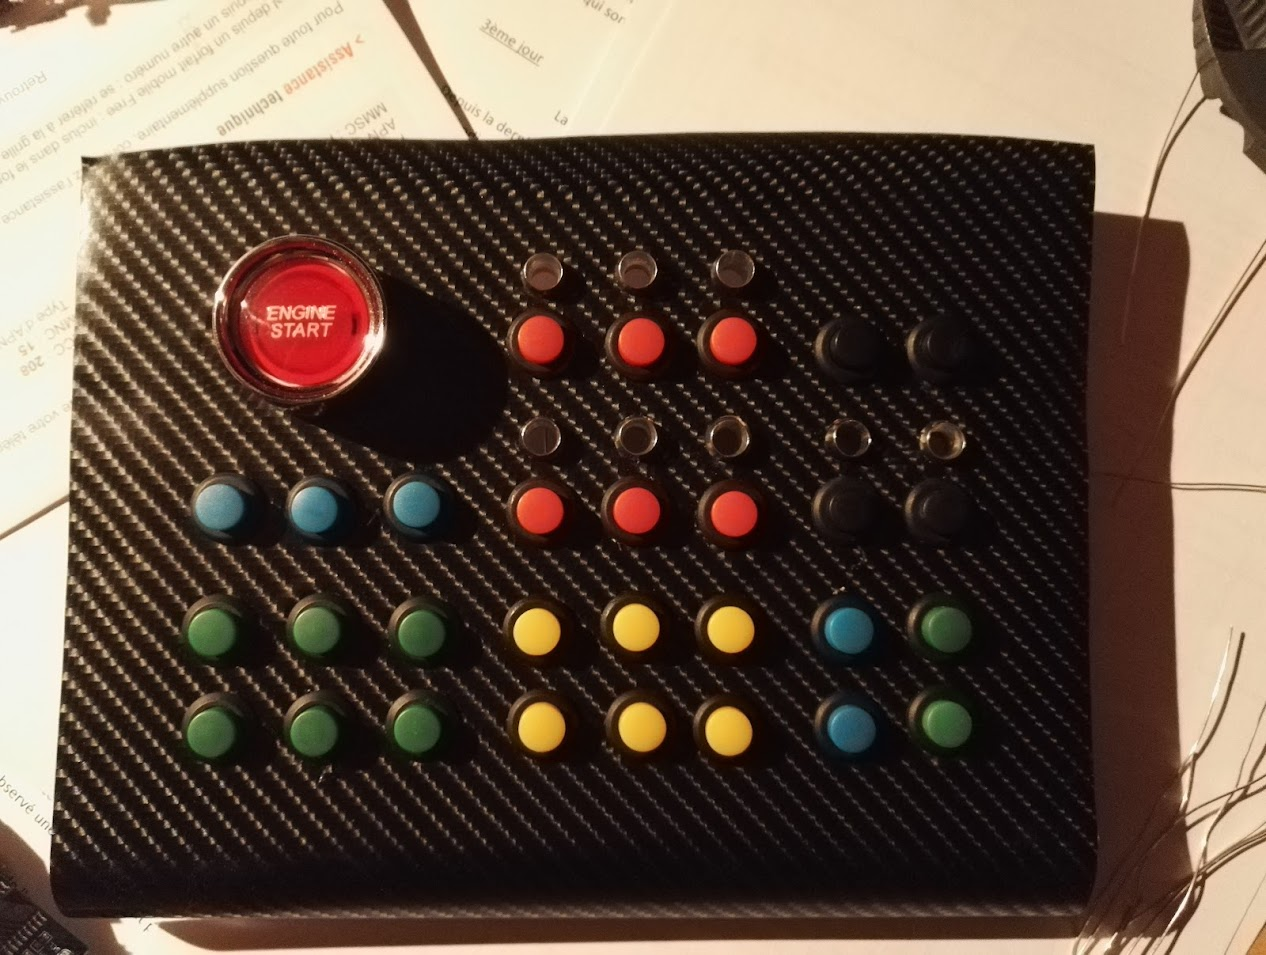 I Wanted To Share With You My USB ButtonBox Which Made Project Cars On PS4 In Mind